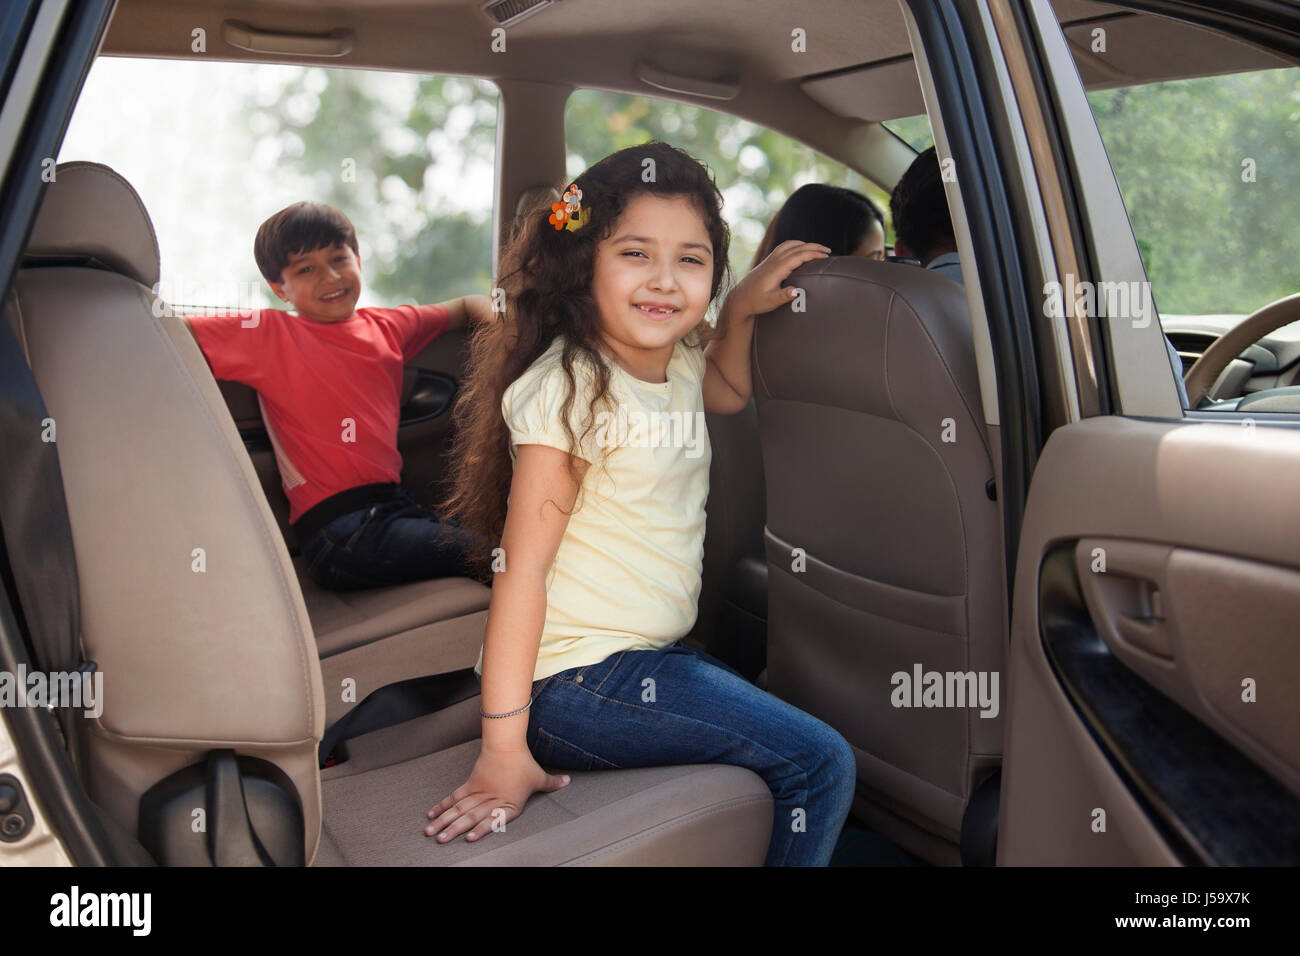 Cute Girl And Boy Sitting In Car Back Seat Stock Photo Alamy